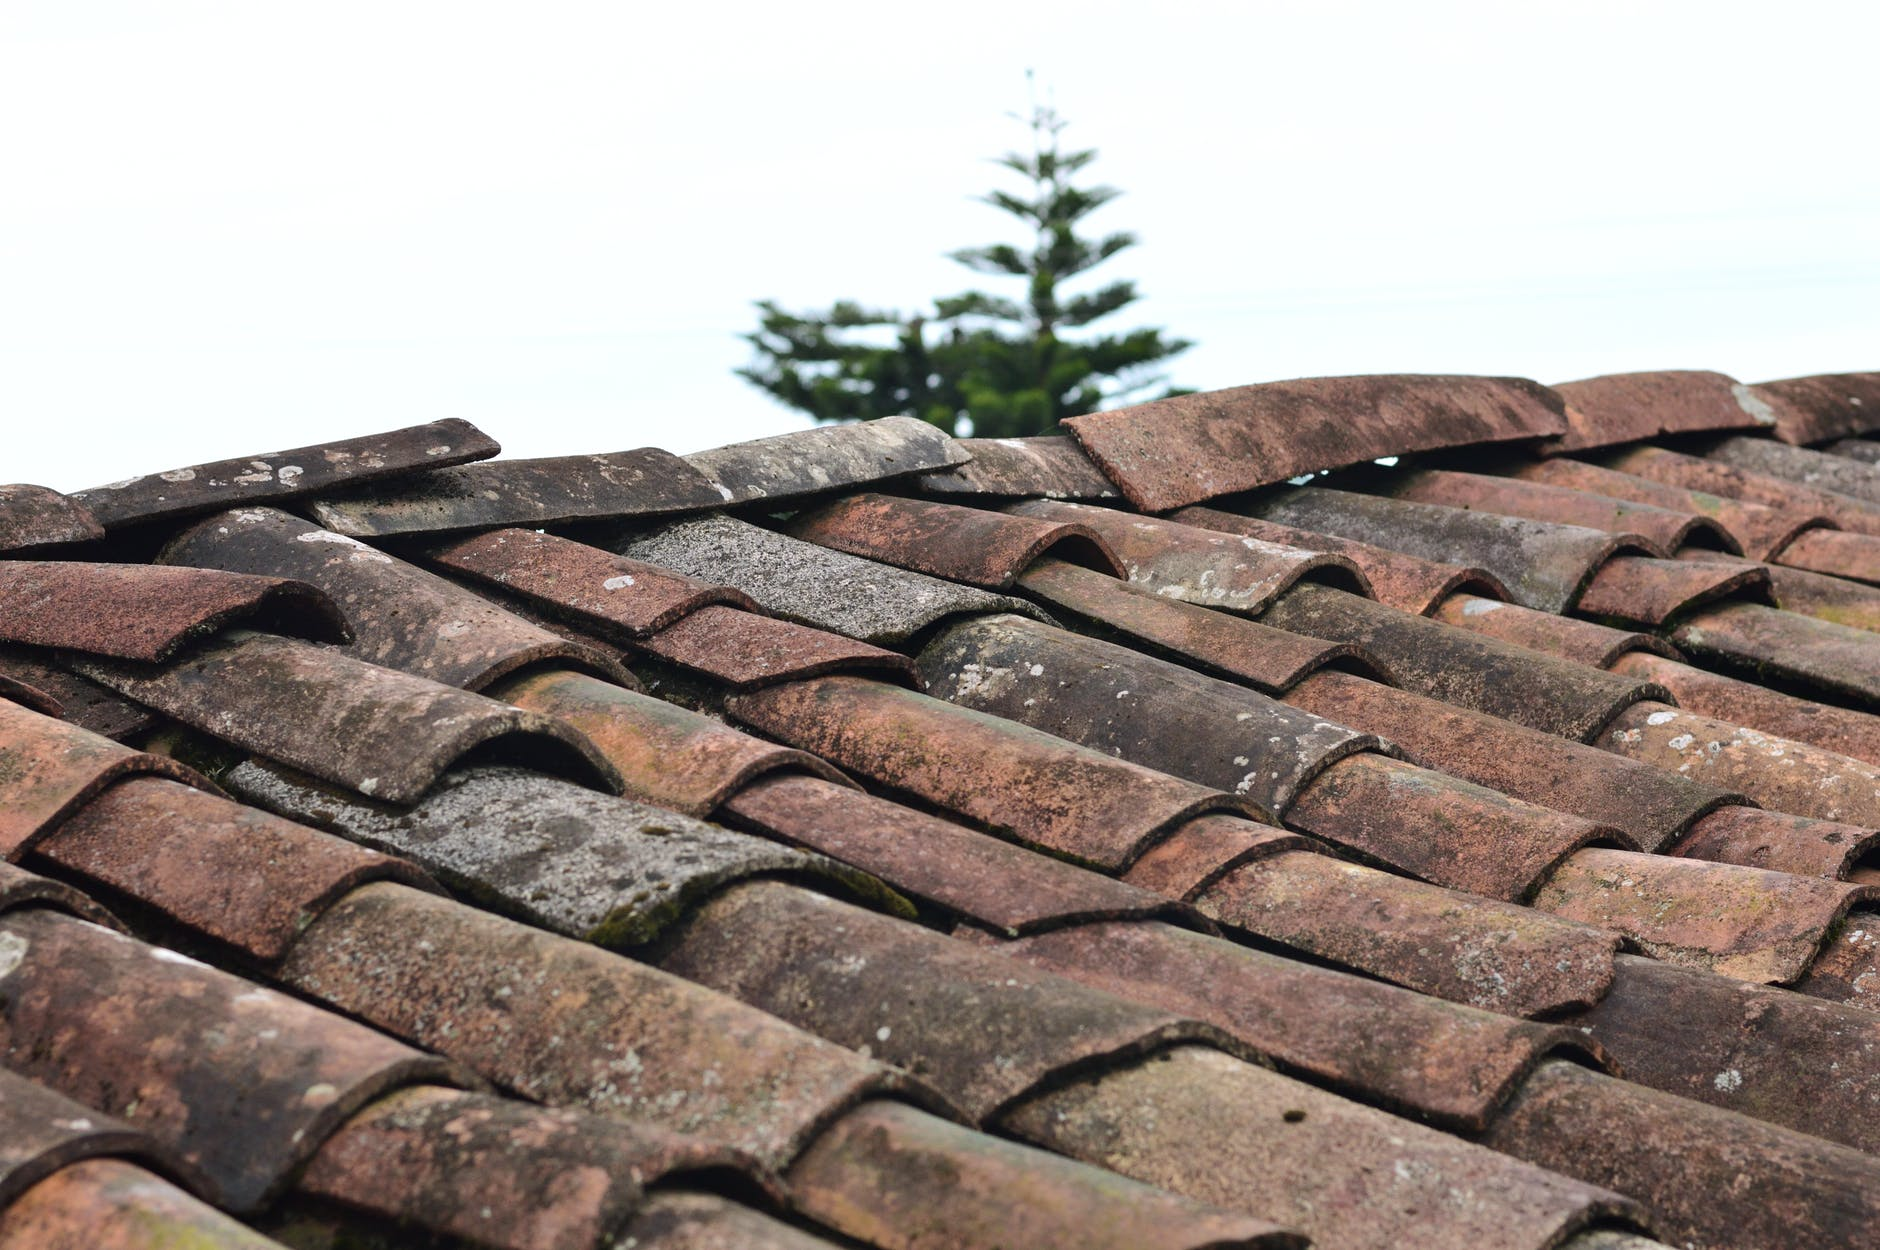 D:\Juan\Desktop\CRC\83056-0331QK - Why You Should Hire Professional Roofers in Raleigh\pexels-photo-1453799.jpeg